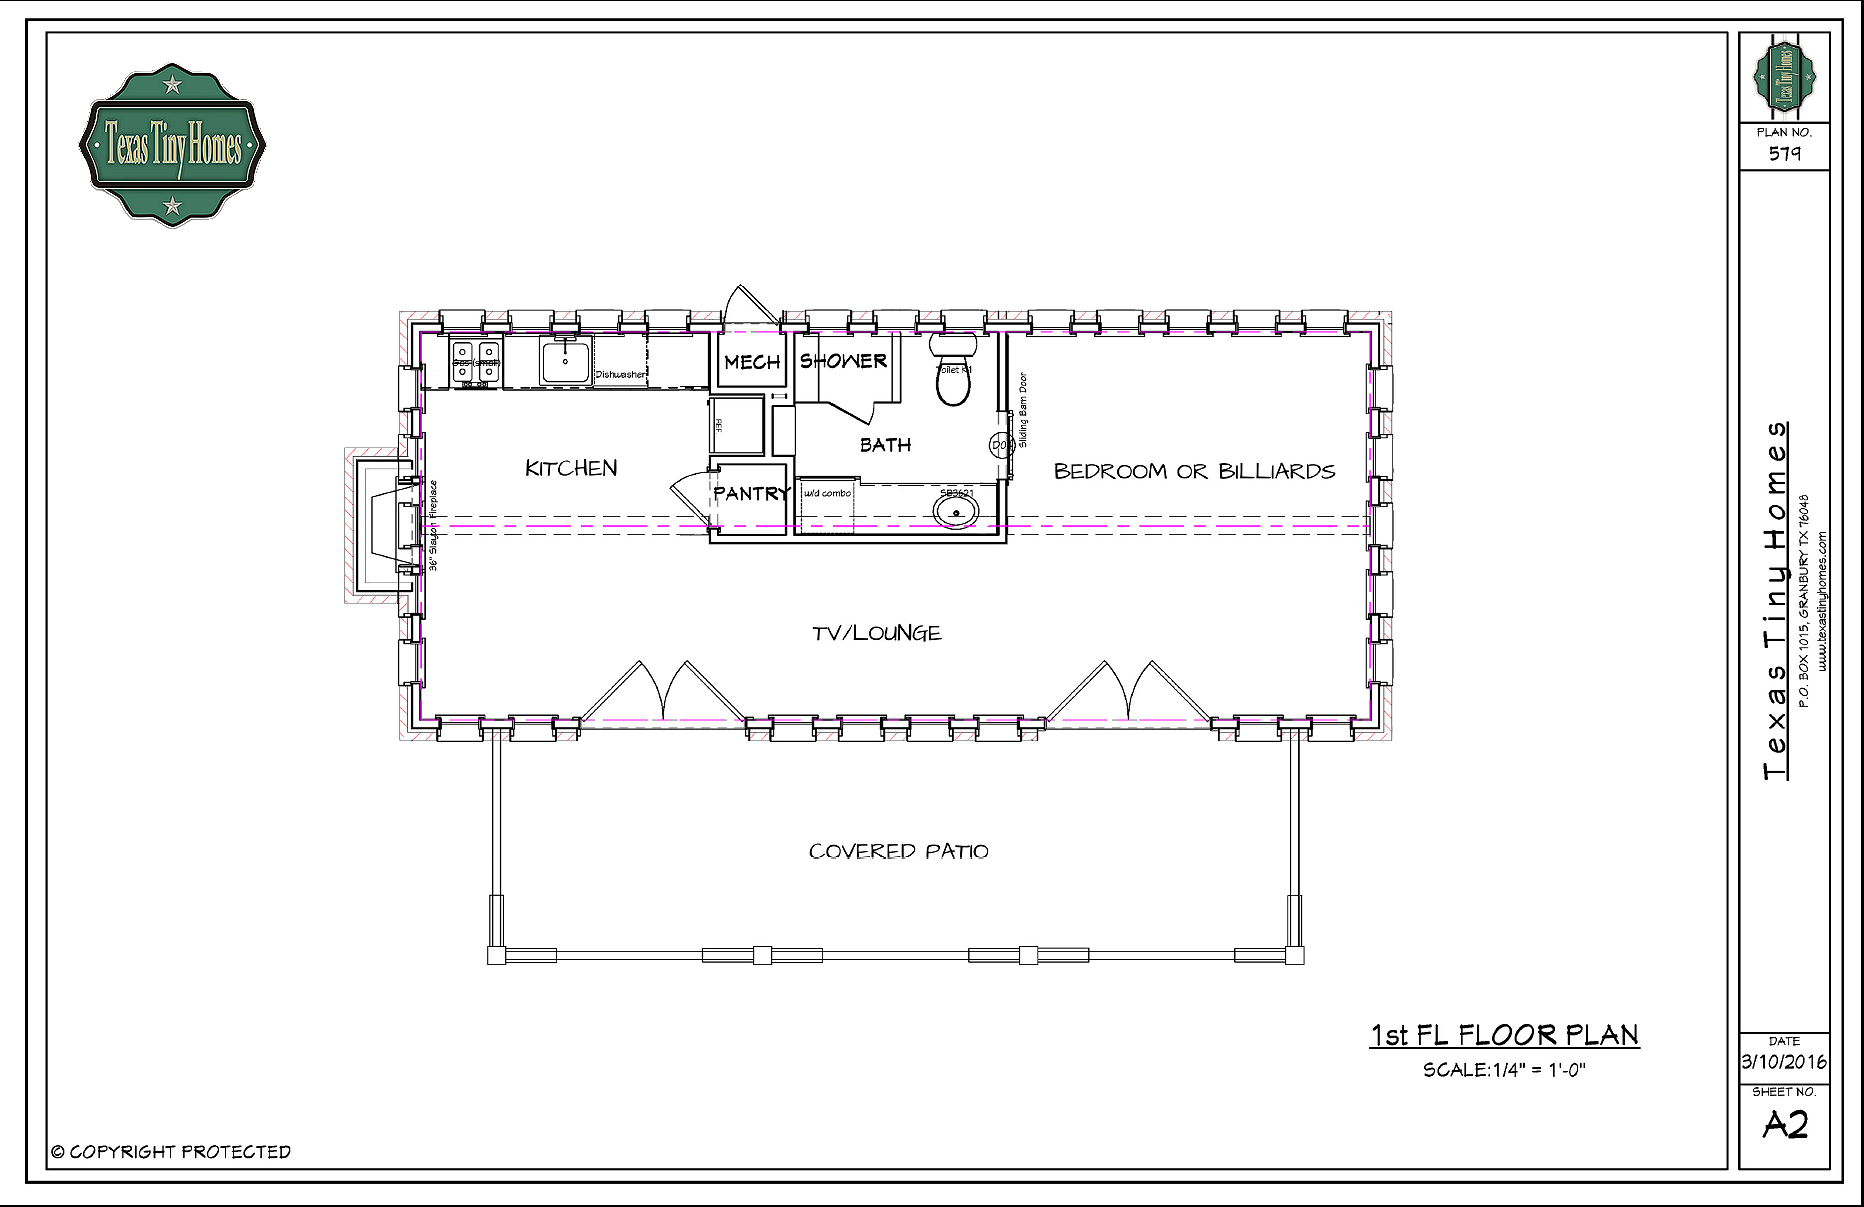 Pool house guest house plans home design and style for Pool house plans designs